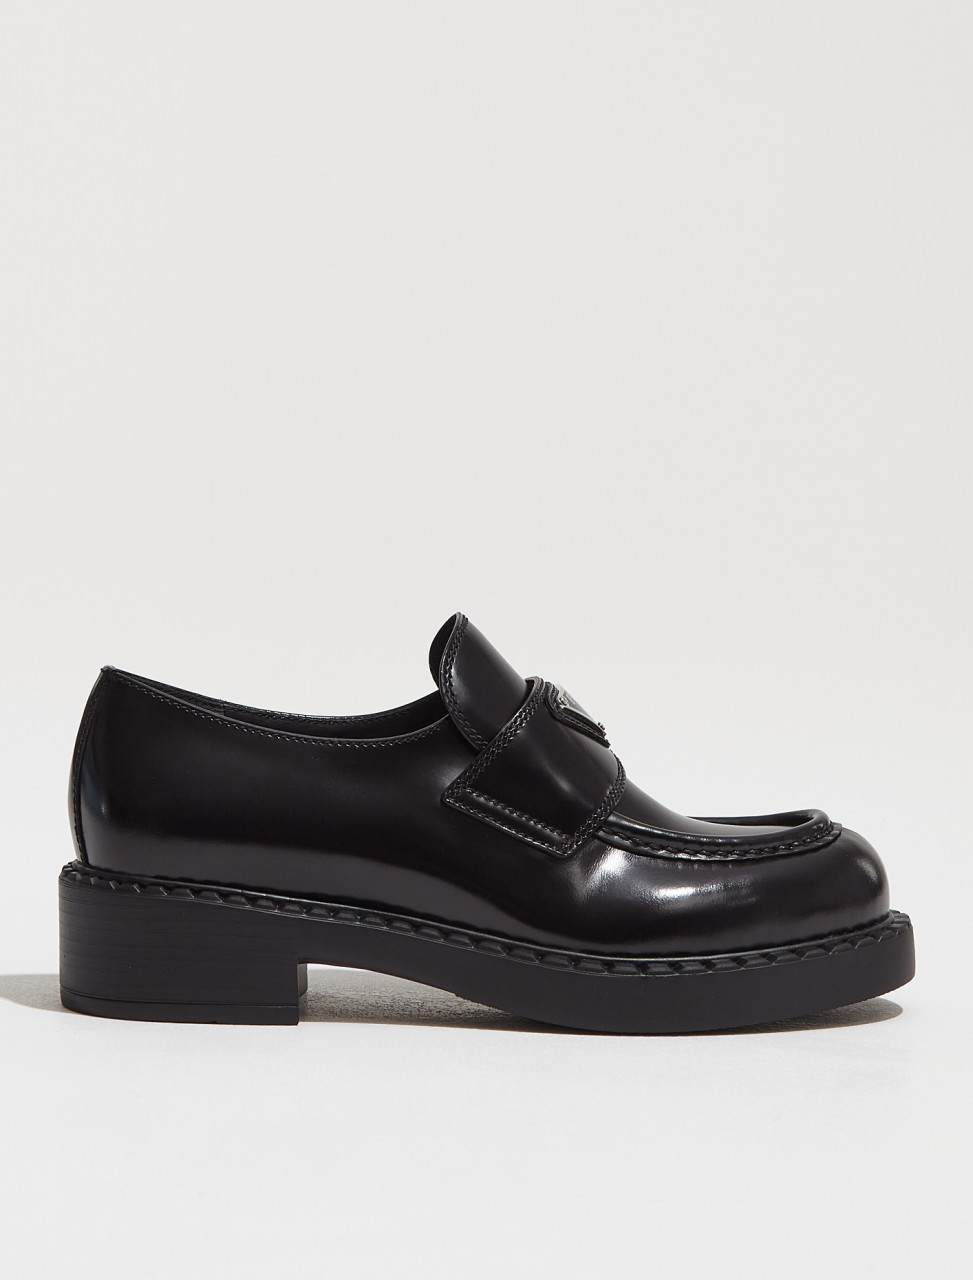 1D246M_ULS_F0002 PRADA BRUSHED LEATHER LOAFERS IN BLACK